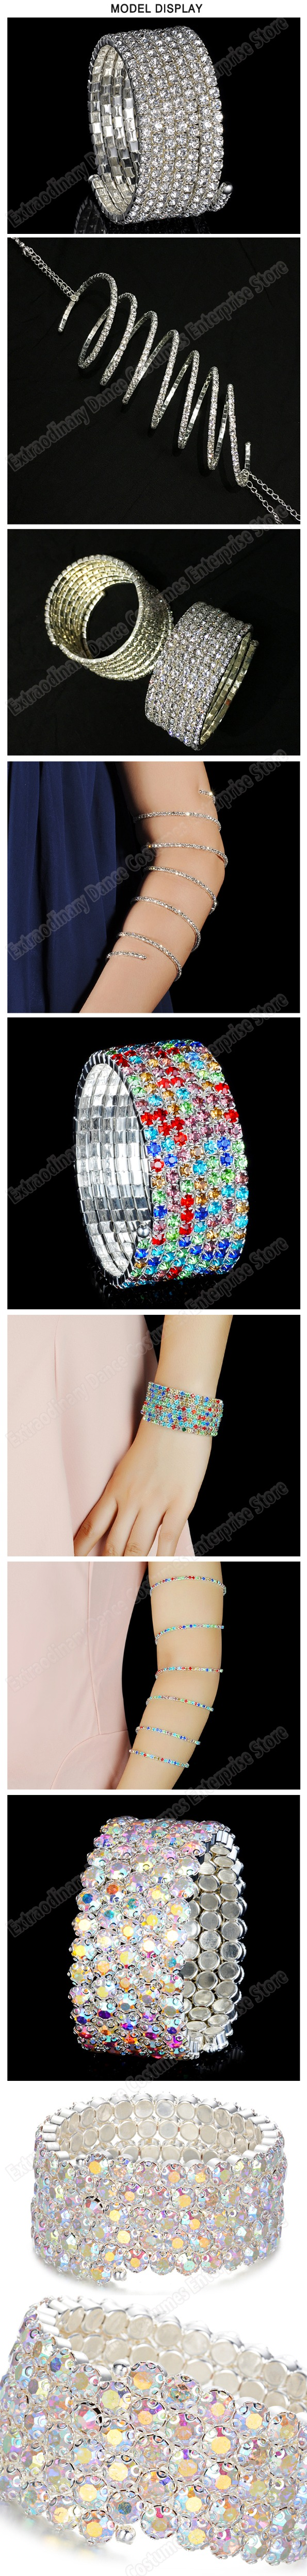 ee2d2c6a65b Belly Dance Accessories Women Arm Cuff decoration Armband Bangle Spiral  Upper Arm Bracelet Women jewelry Party BarceletsUSD 7.60-14.60/piece ...